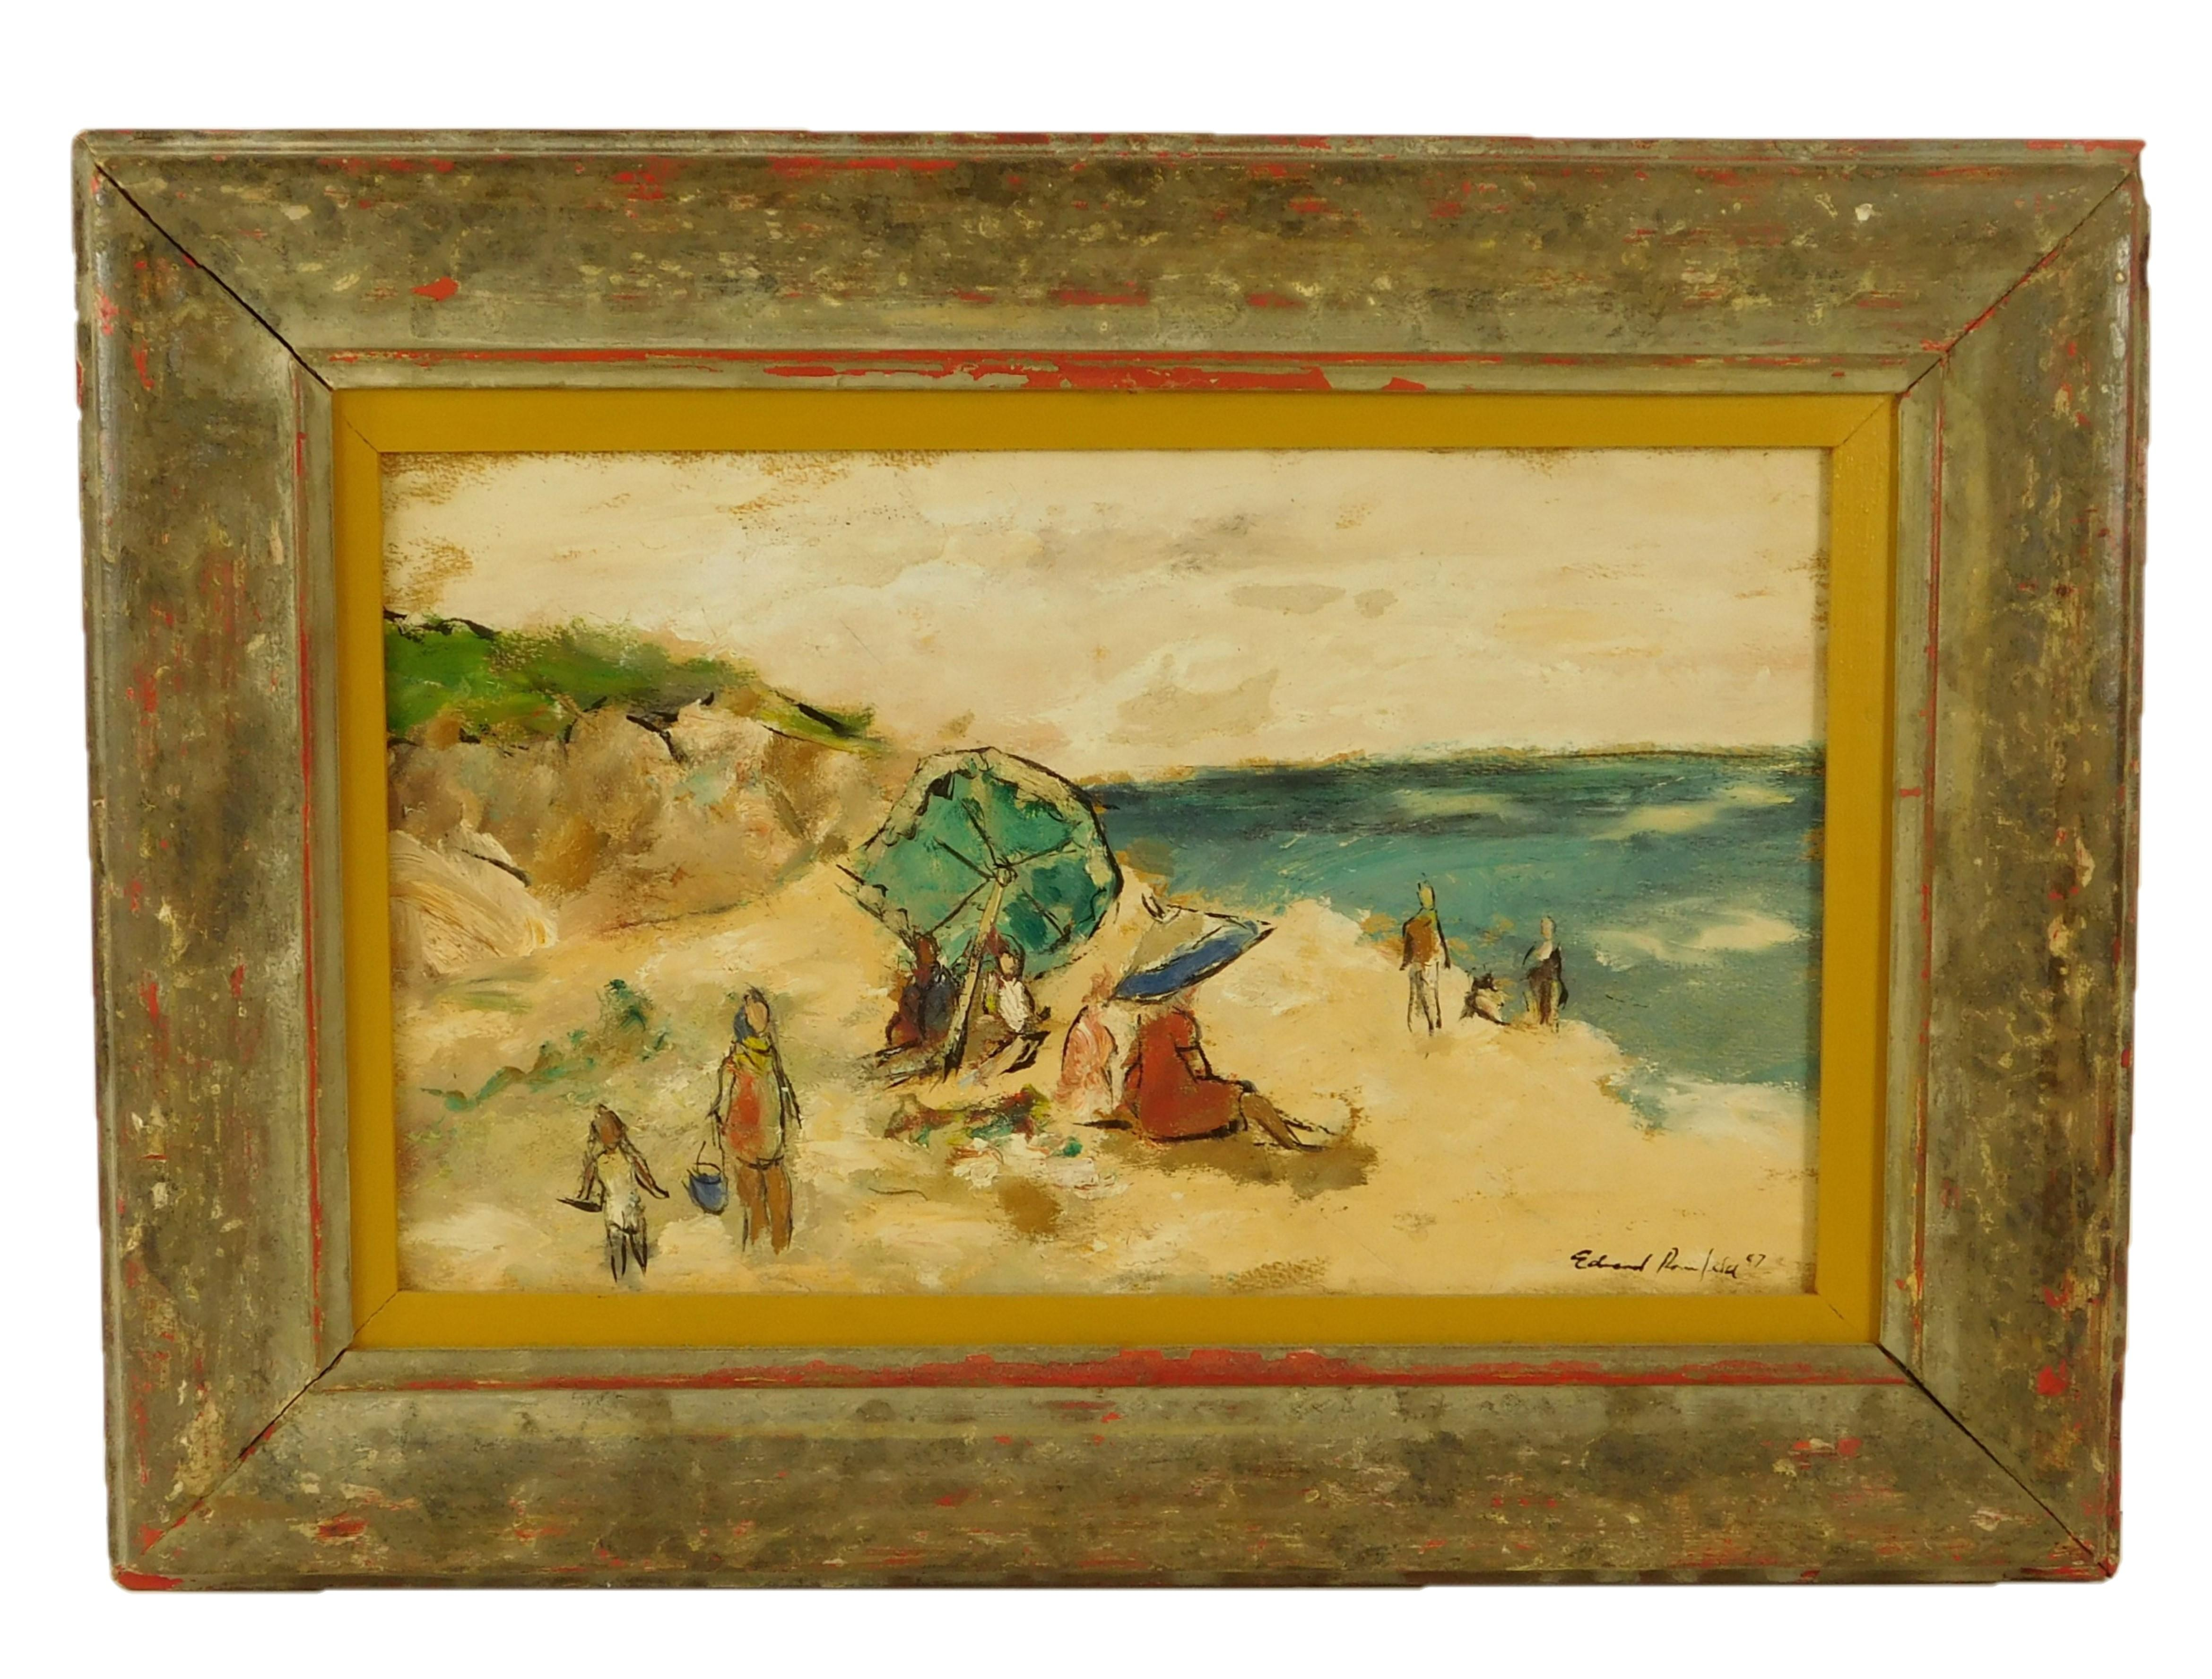 """Edward Rosenfeld (American, 1906-1983), """"Green Umbrella"""", oil on masonite, depicts stylized beach scene with a crowd of people and a..."""